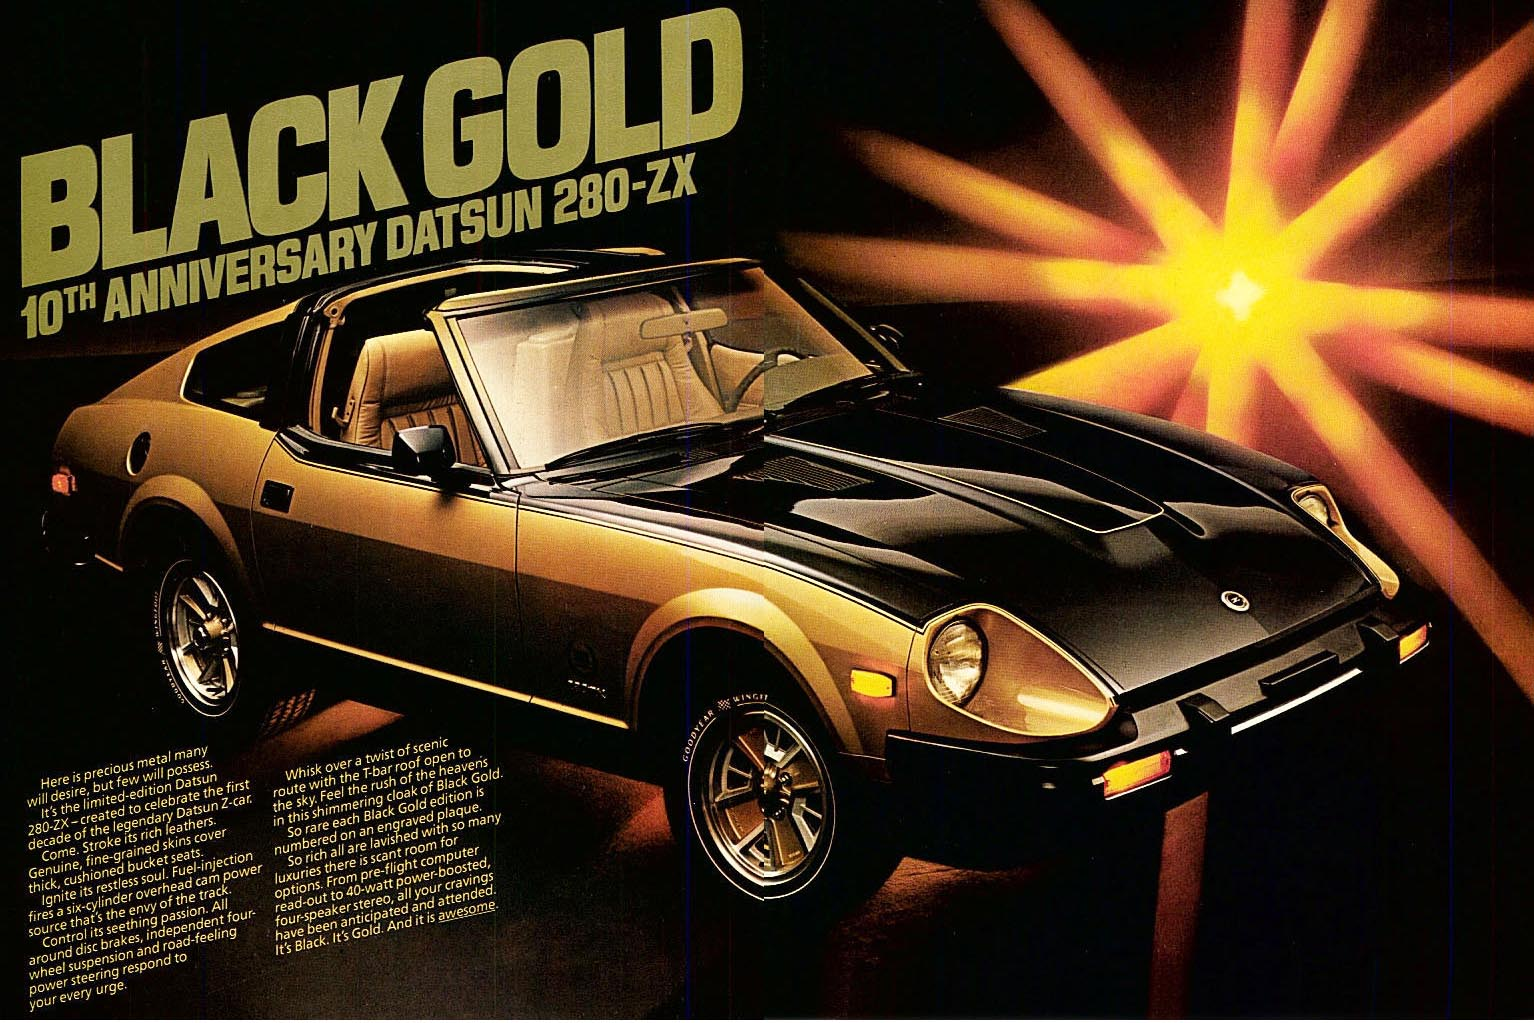 Yeesh. The famous black-and-gold 280ZX was everything that was wrong with Datsun in the 1980s. Yes, it's collectible, but it's also a complete refutation of the ideals of the original 240Z. It is flashy, it has T-tops, and it's about as sporty as a handlebar moustache.